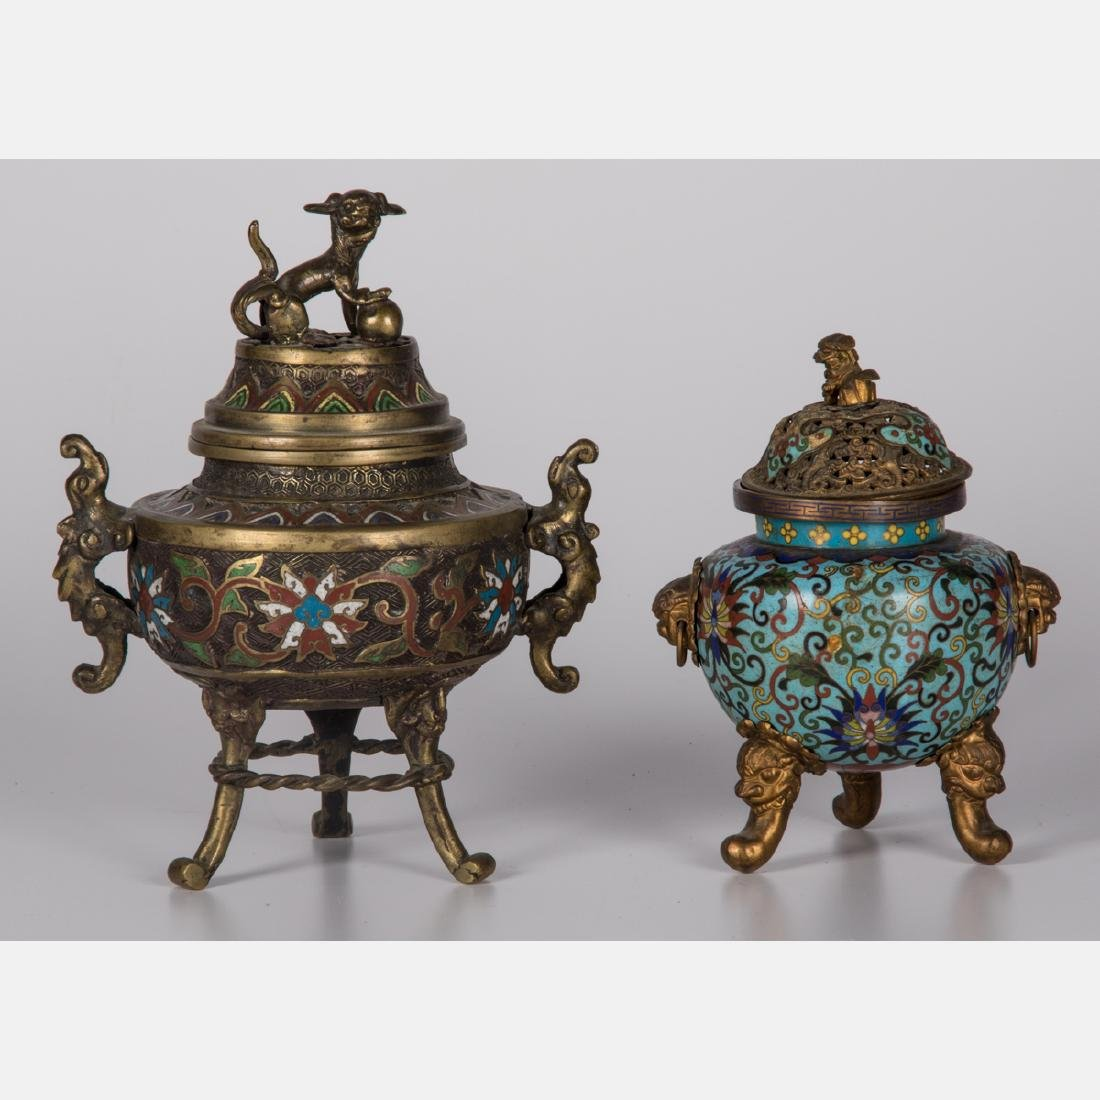 Two Chinese Brass and Cloisonné Censers, 19th/20th